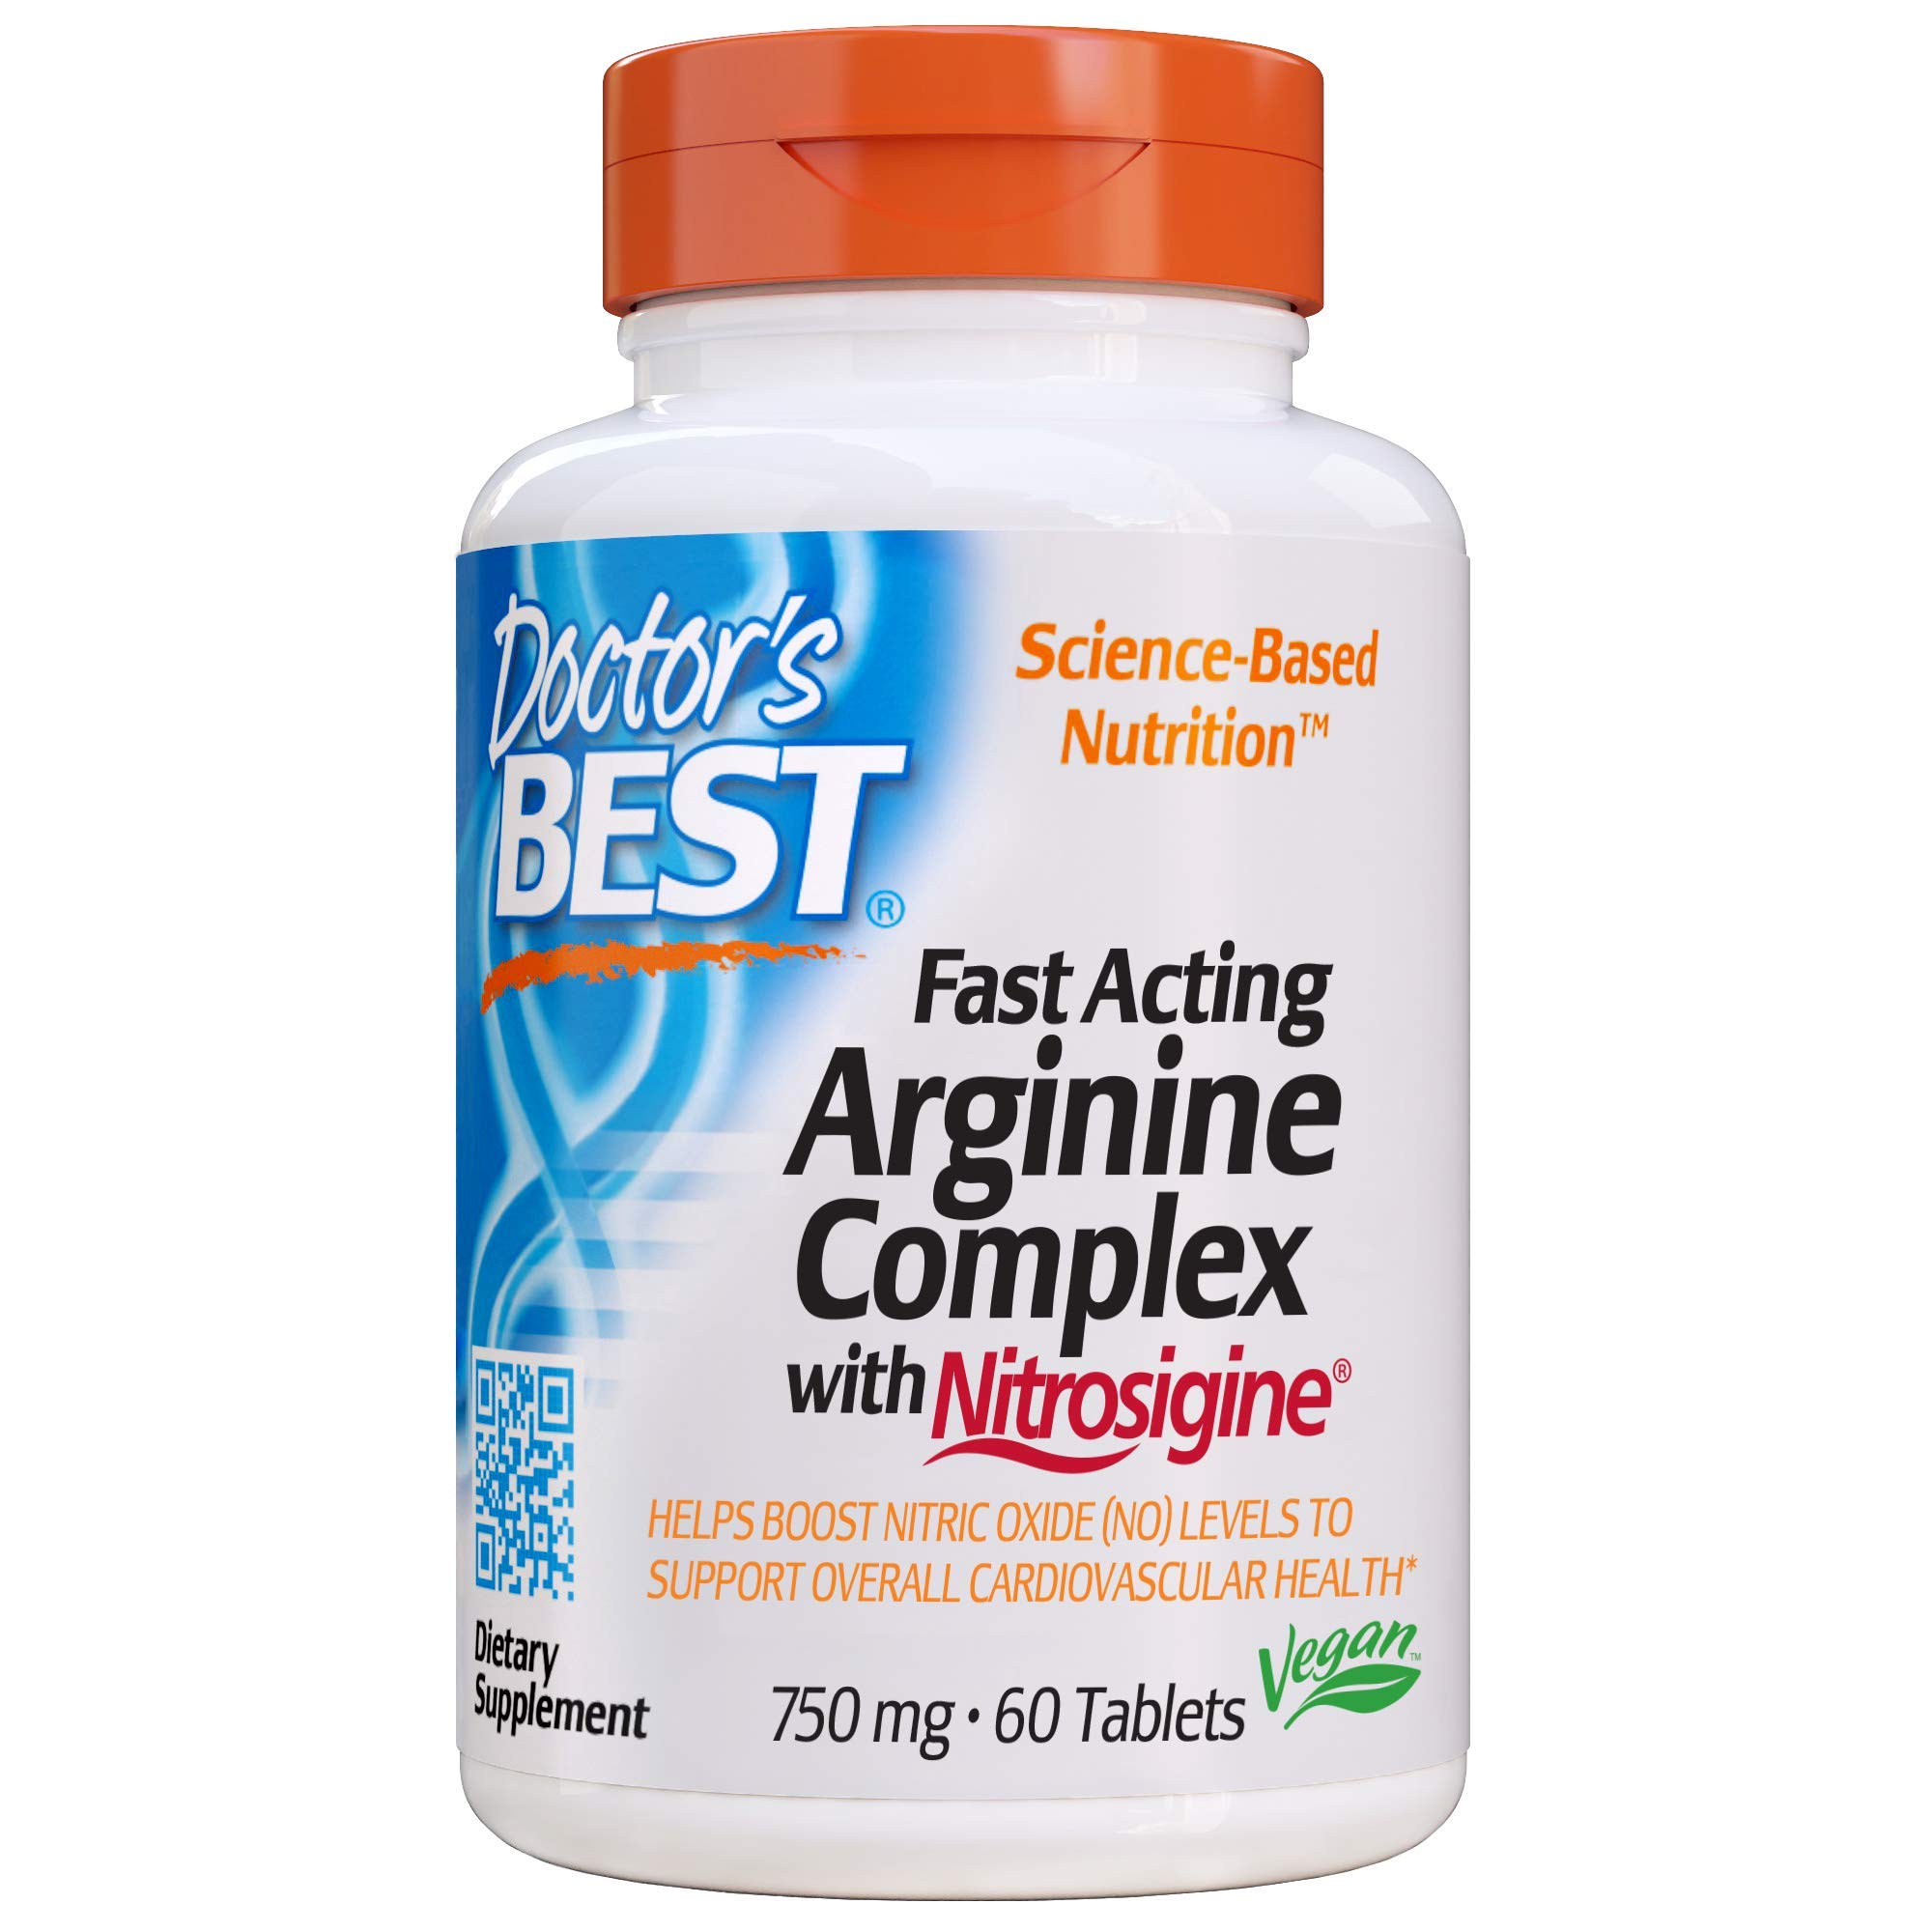 Doctor's Best Fast Acting Arginine Complex with Nitrosigine, Non-GMO, Vegan, Gluten Free, 750 mg, 60 Tablets by Doctor's Best